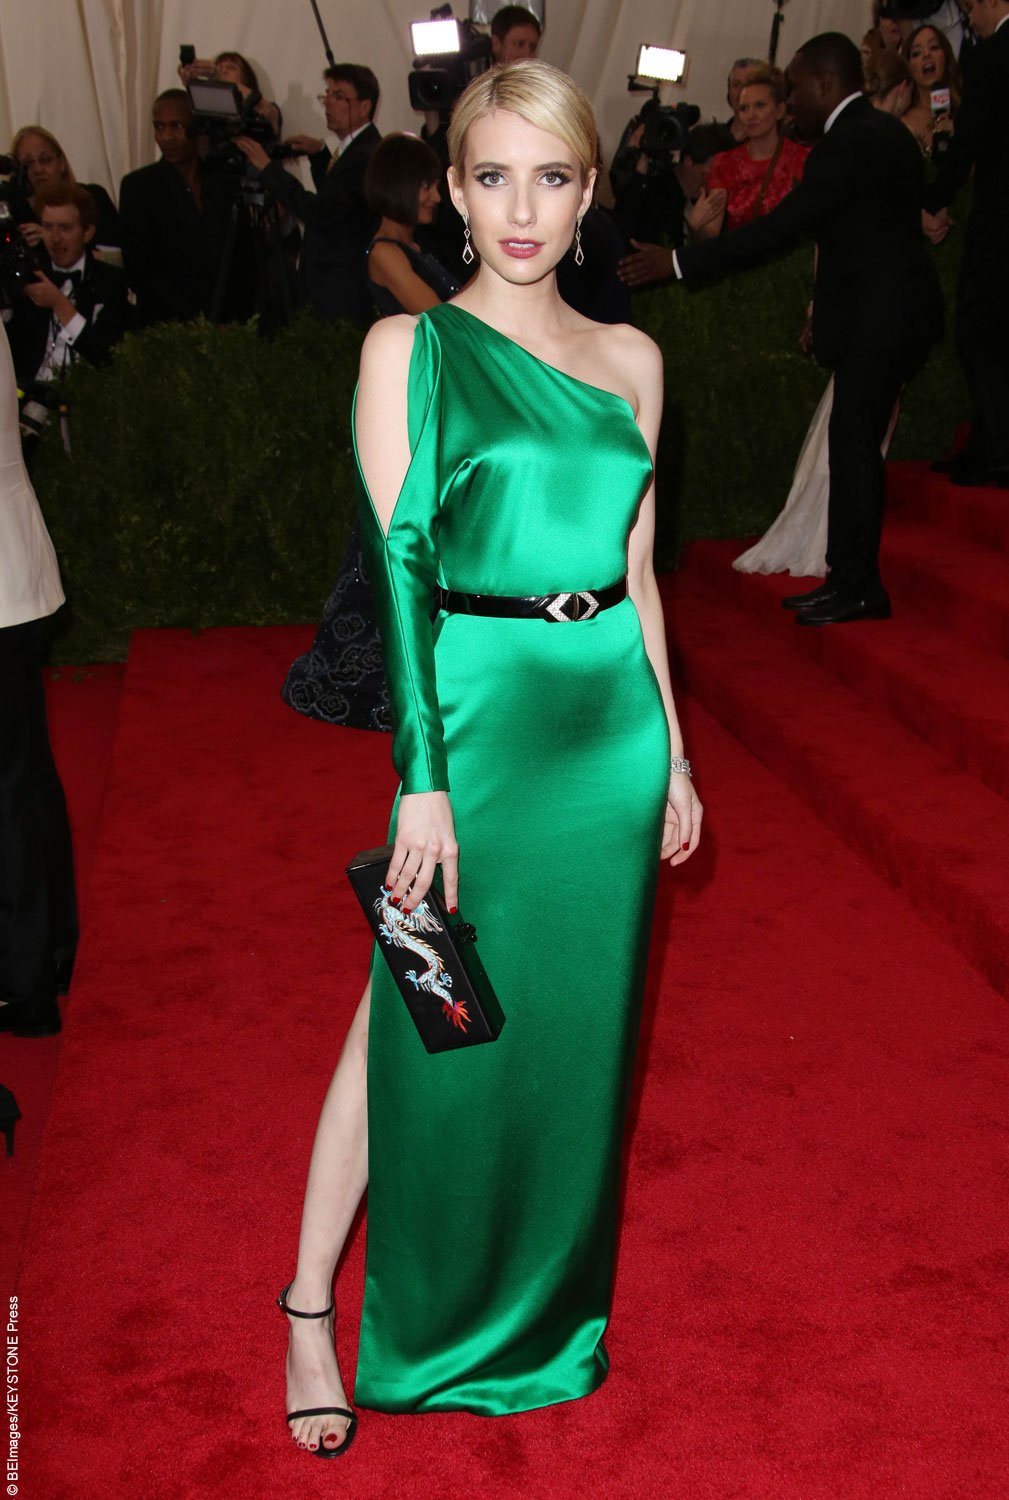 Emma Roberts walked the red carpet in a glamorous emerald silk Ralph Lauren gown. The old Hollywood look contrasted the red carpet and hugged her slim frame perfectly. To match theevent'sChina: Through the Looking Glass theme, Emma finished off the look with a dragon-printed Ralph Lauren clutch.